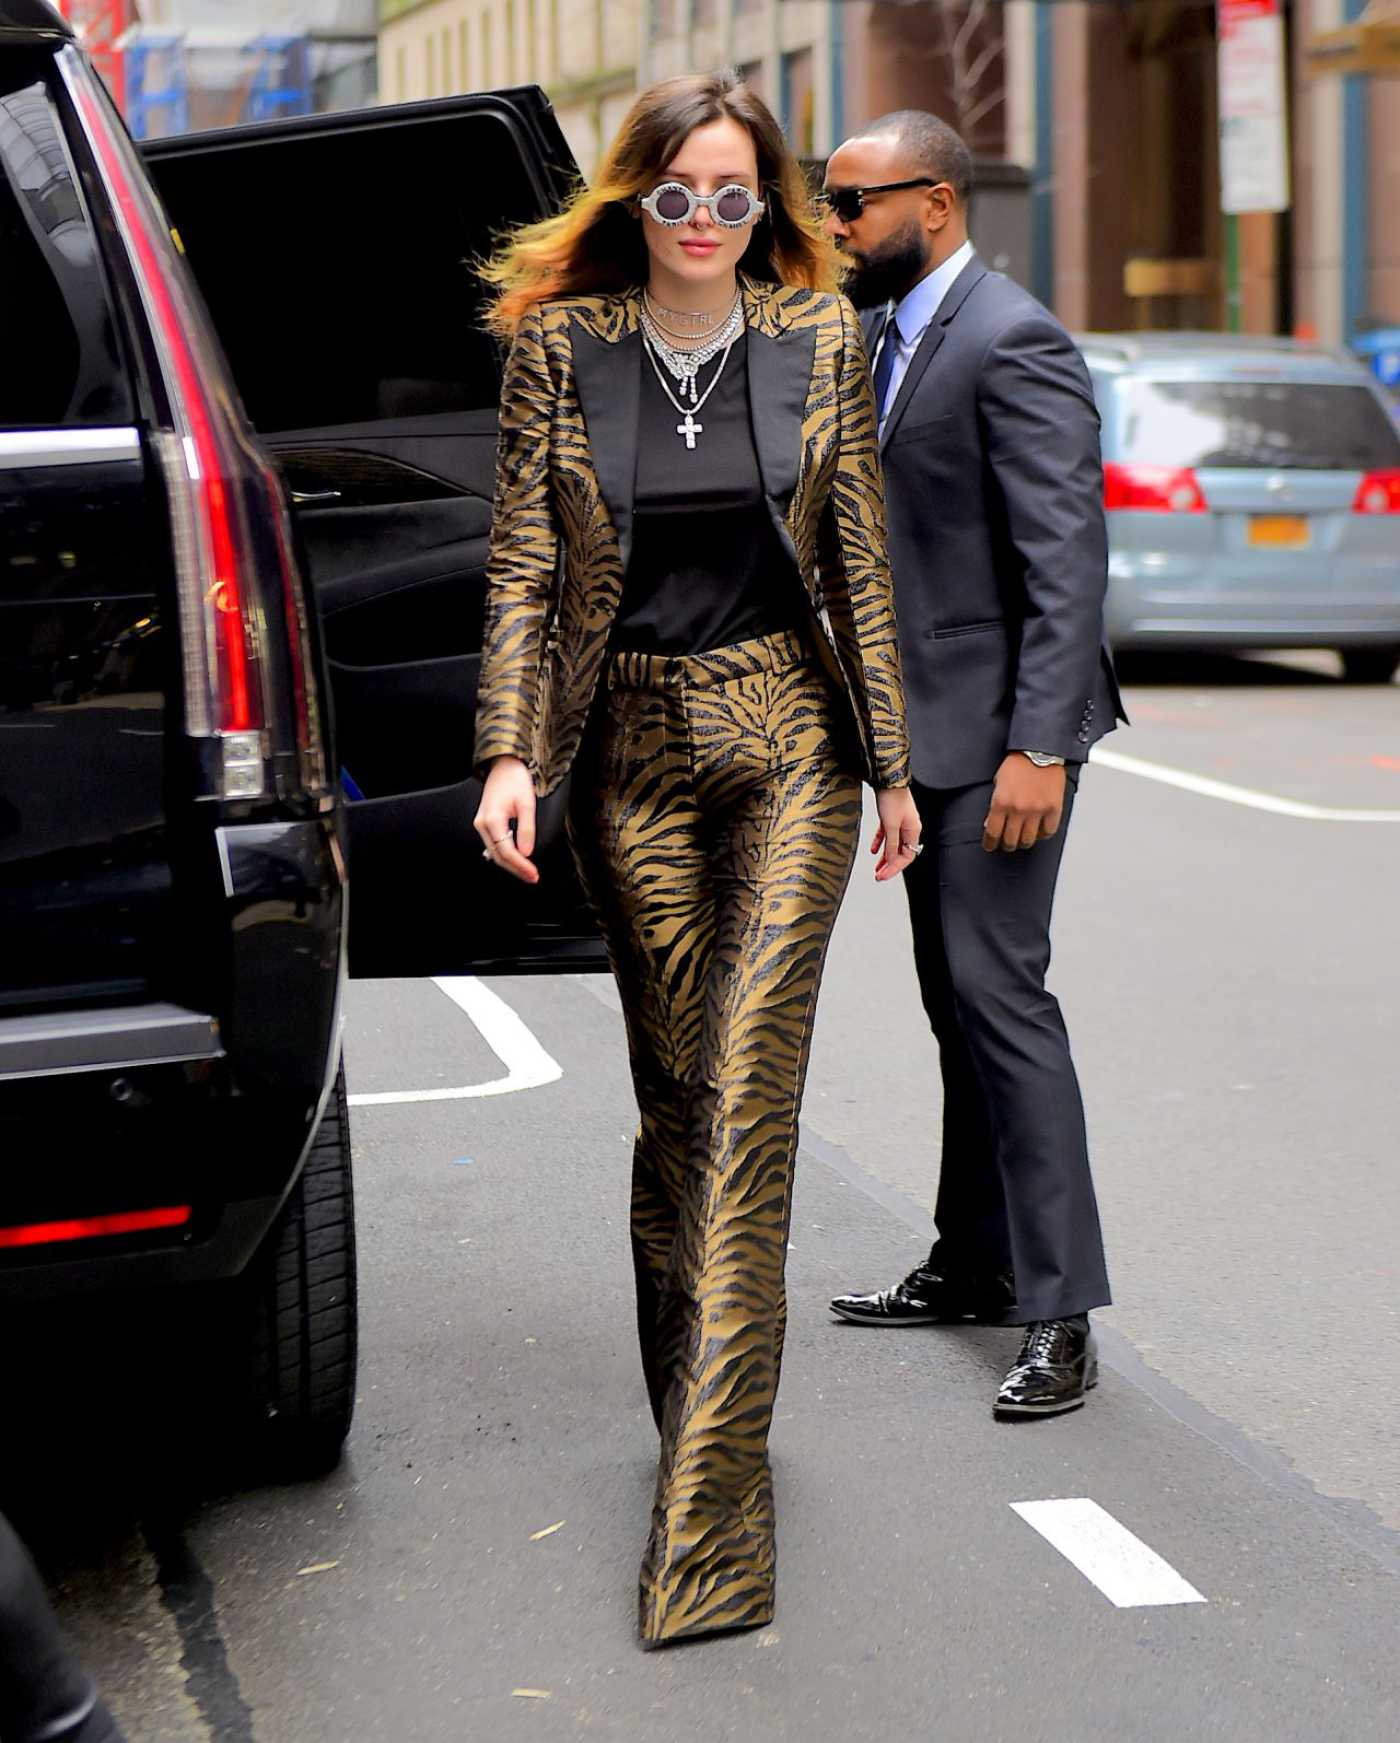 Bella Thorne in a Gold Suit Was Seen Out in NYC 03/25/2019